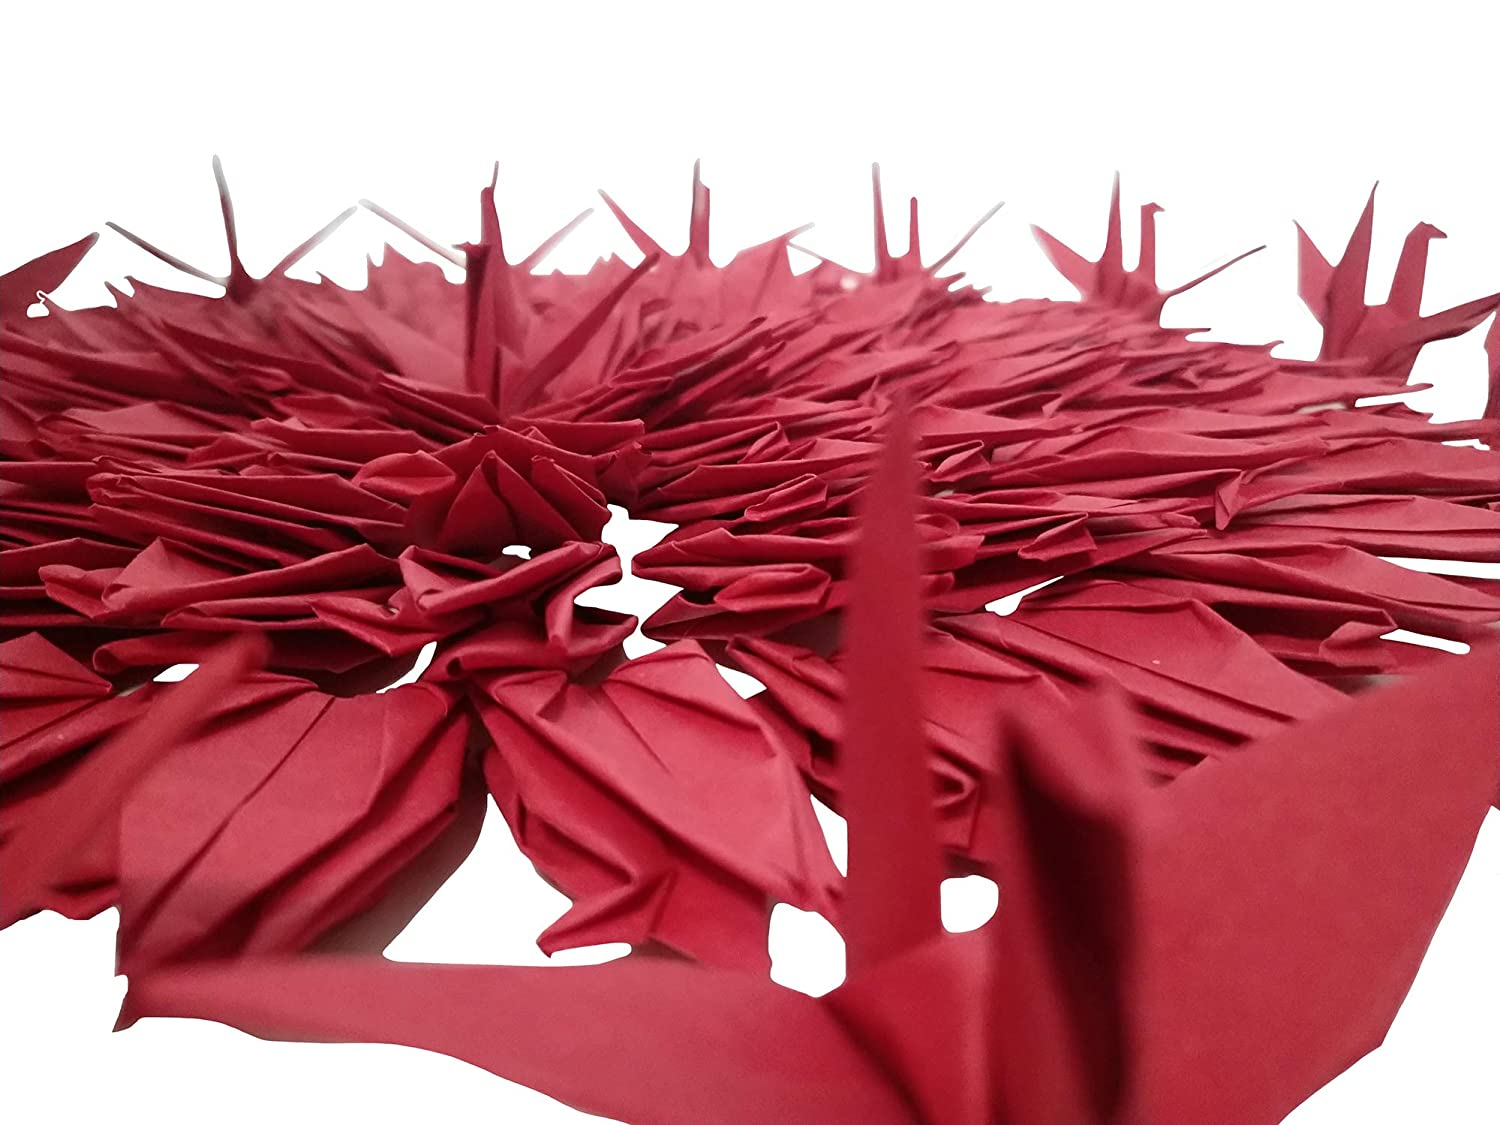 Happiness Symbol of Love Good Luck Kingsnow 100 PCS Red Origami Paper Crane Folded Hand-Made DIY Crane for Wedding Party Baby Shower Background Decoration